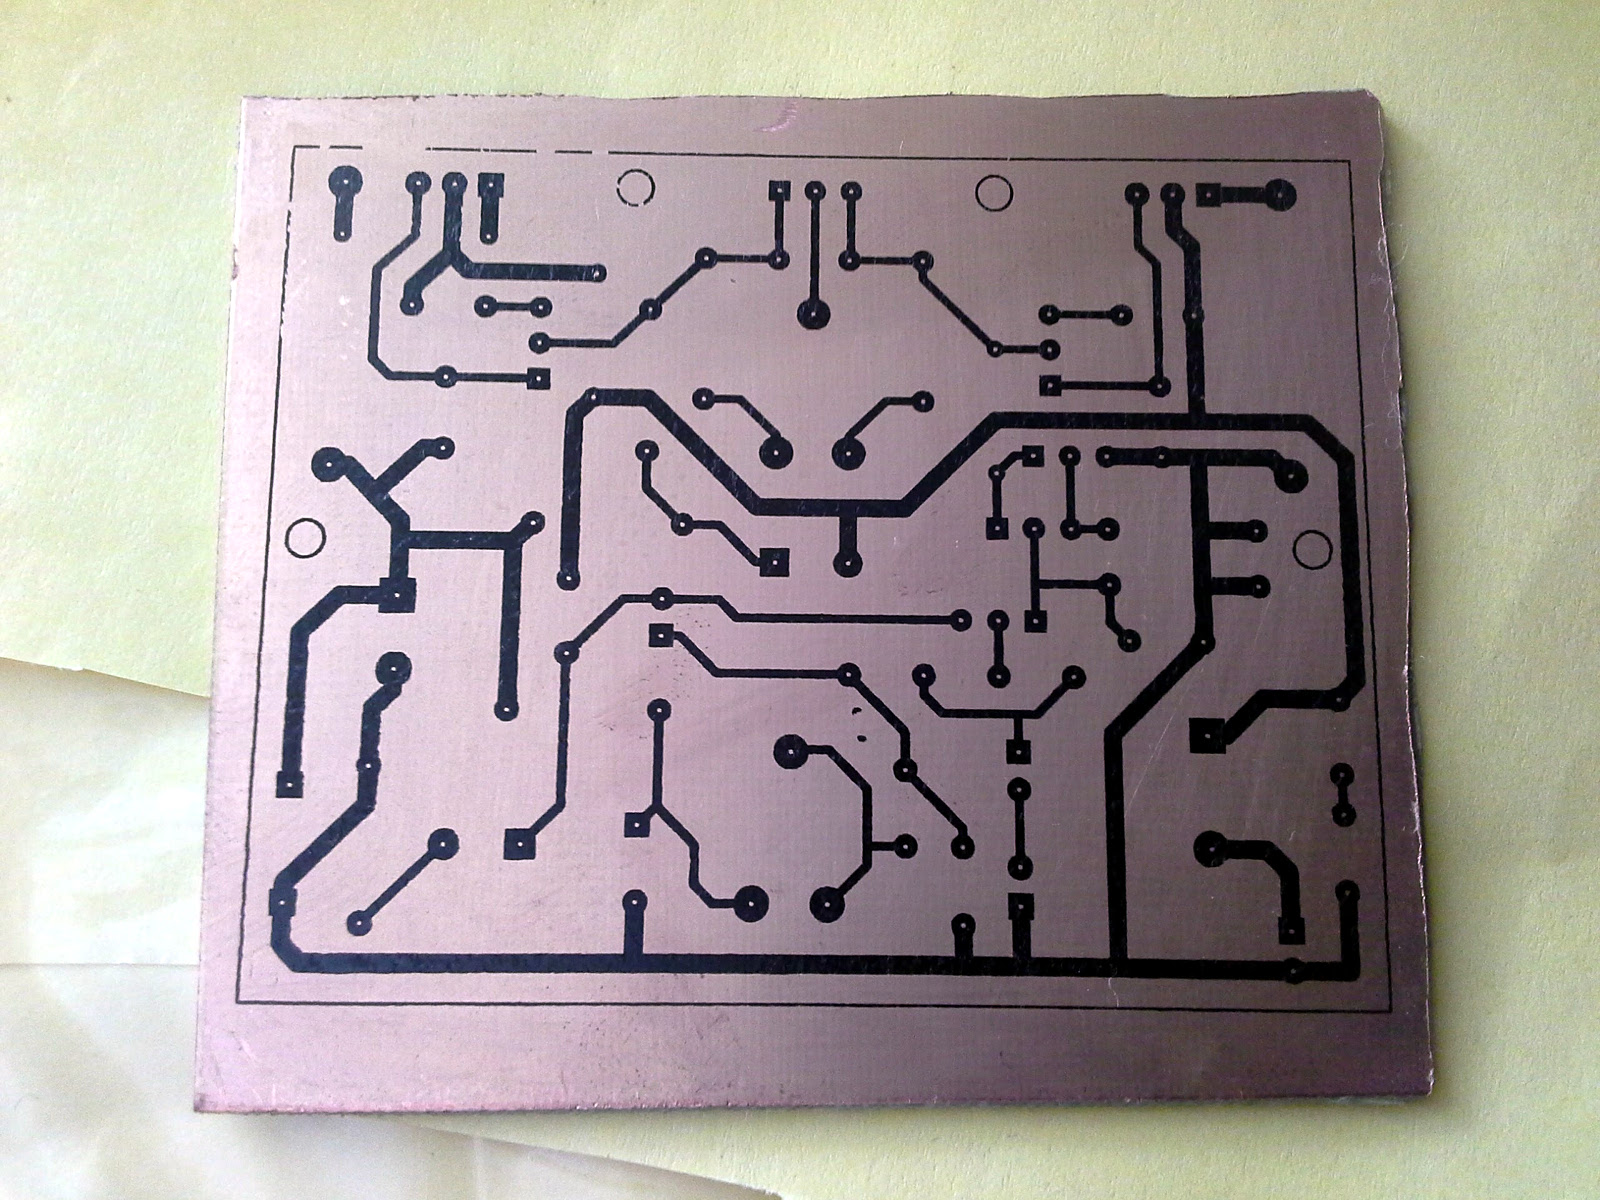 Homemade Pcb With Toner Transfer Method One Transistor Circuit Board After Etching Process Peeling Off The Paper Print On Copper